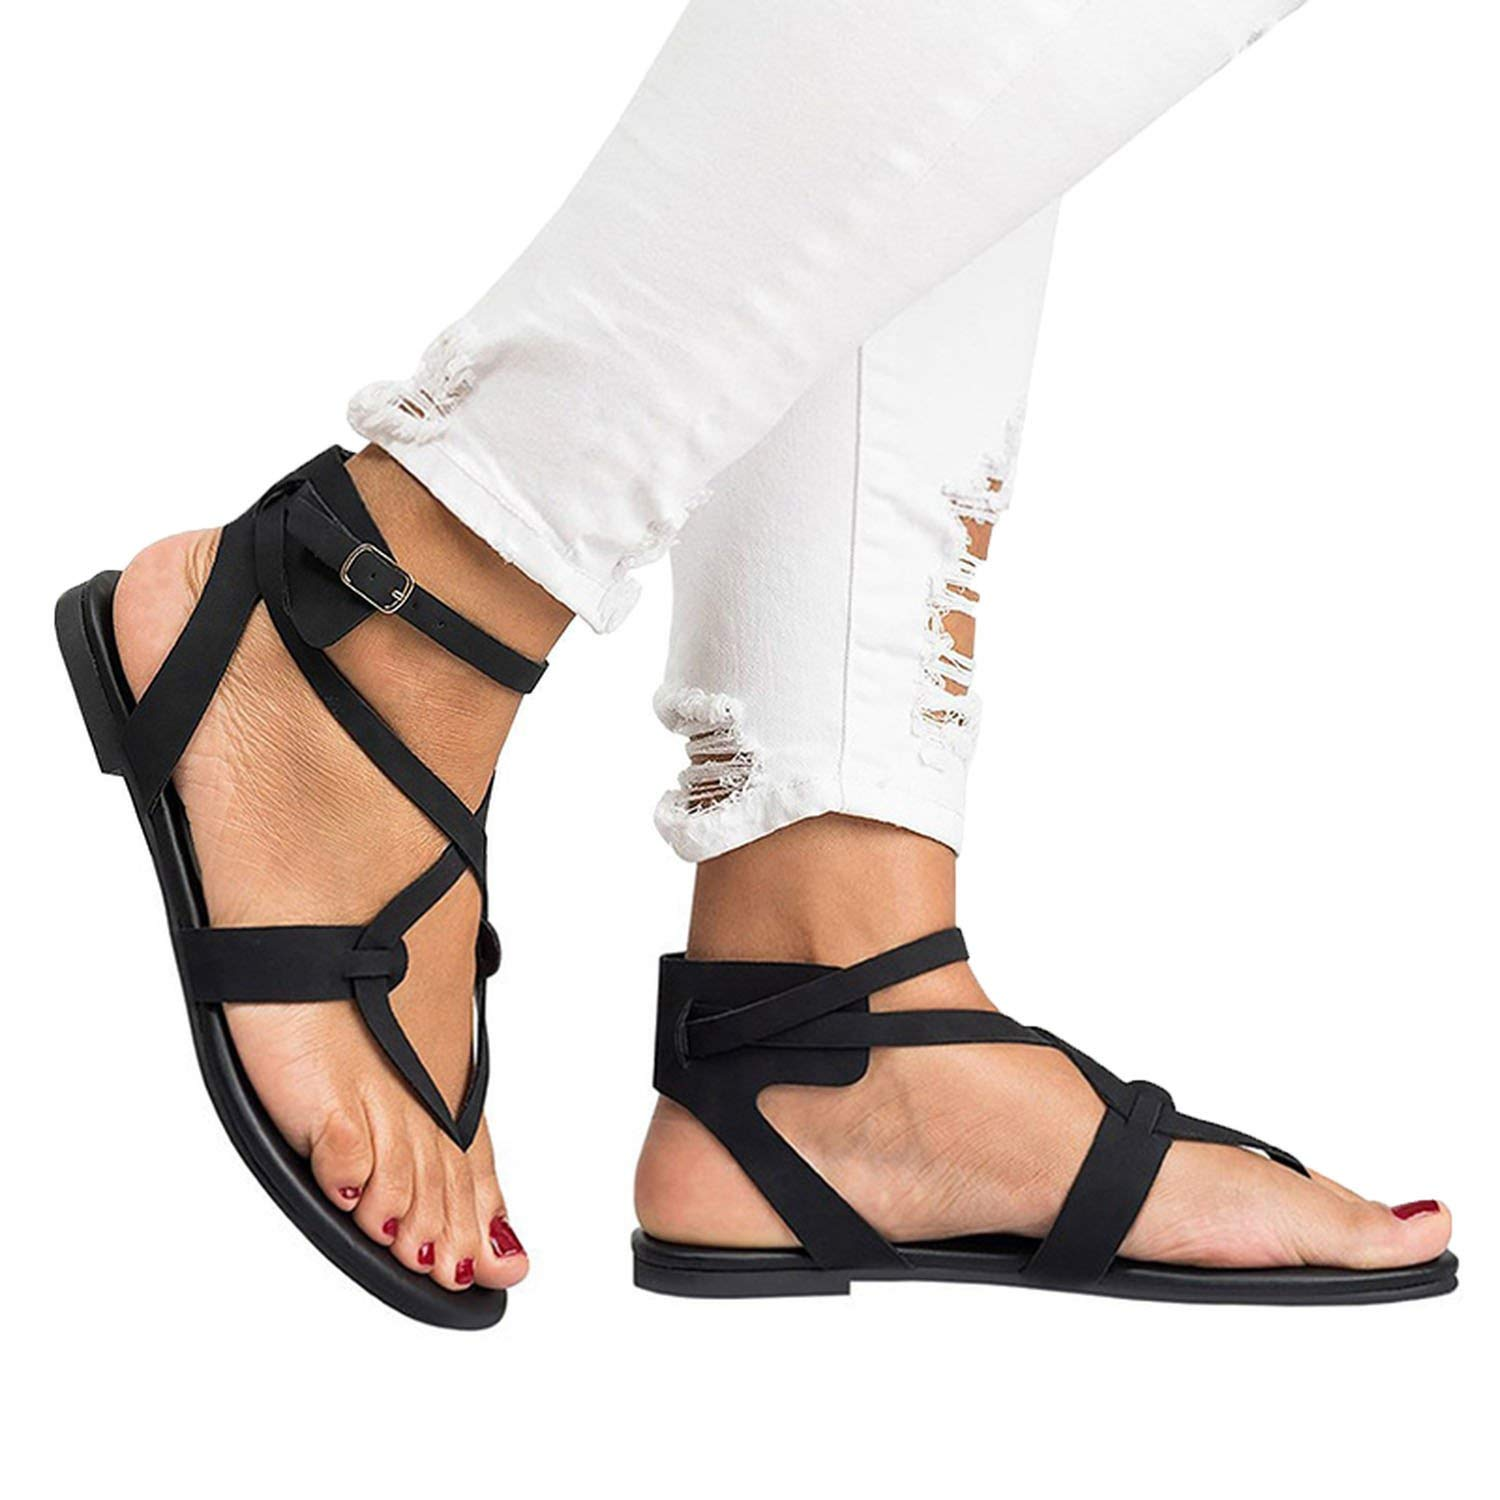 b8b737f73e3 Get Quotations · Romantic moments New Arrive Women Gladiator Sandals Summer  Women Shoes Plus Size 35-43 Flats